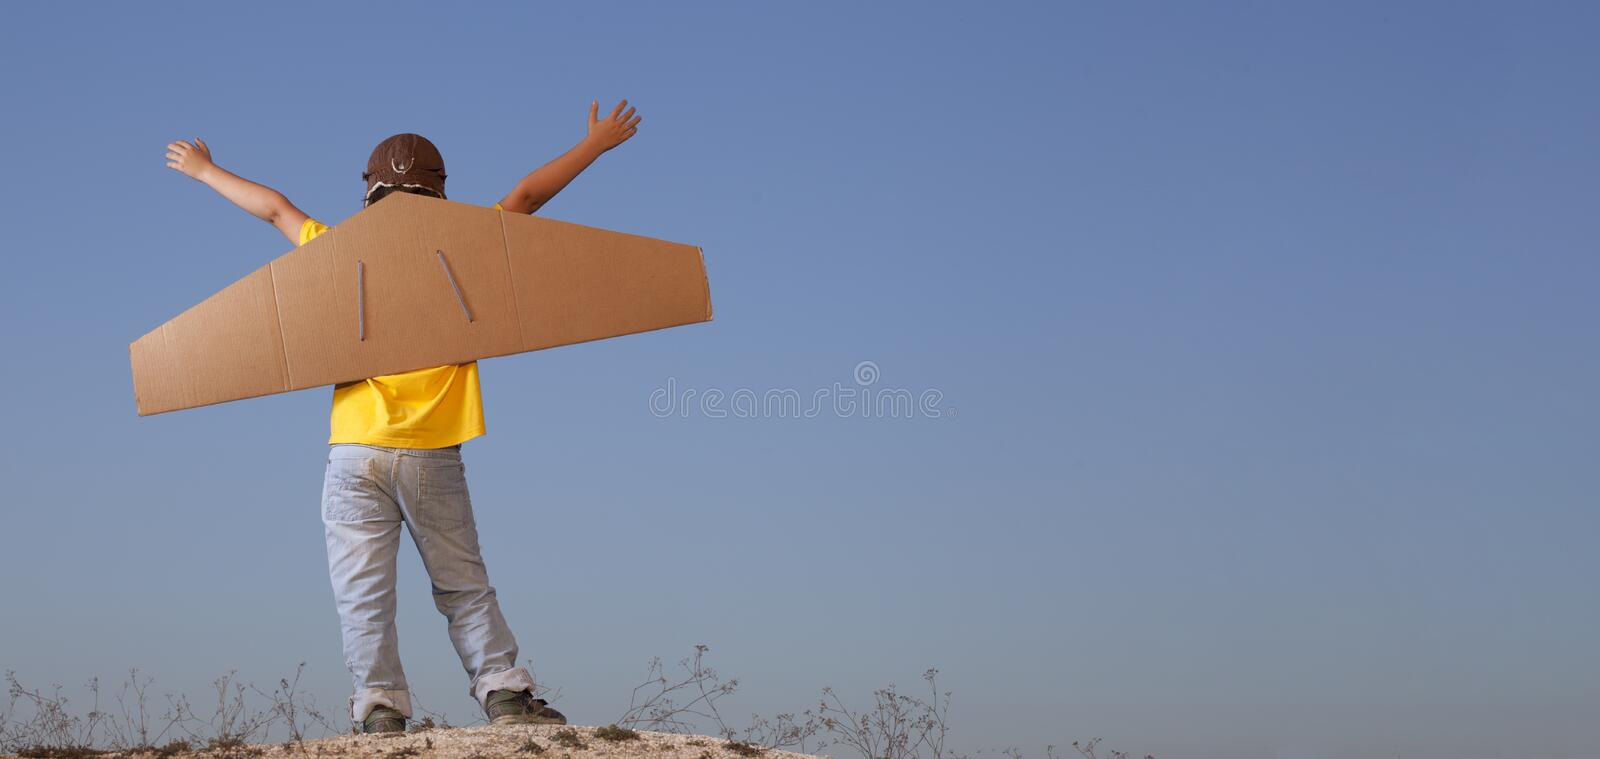 Happy boy with cardboard boxes of wings against sky dream of fly royalty free stock photos